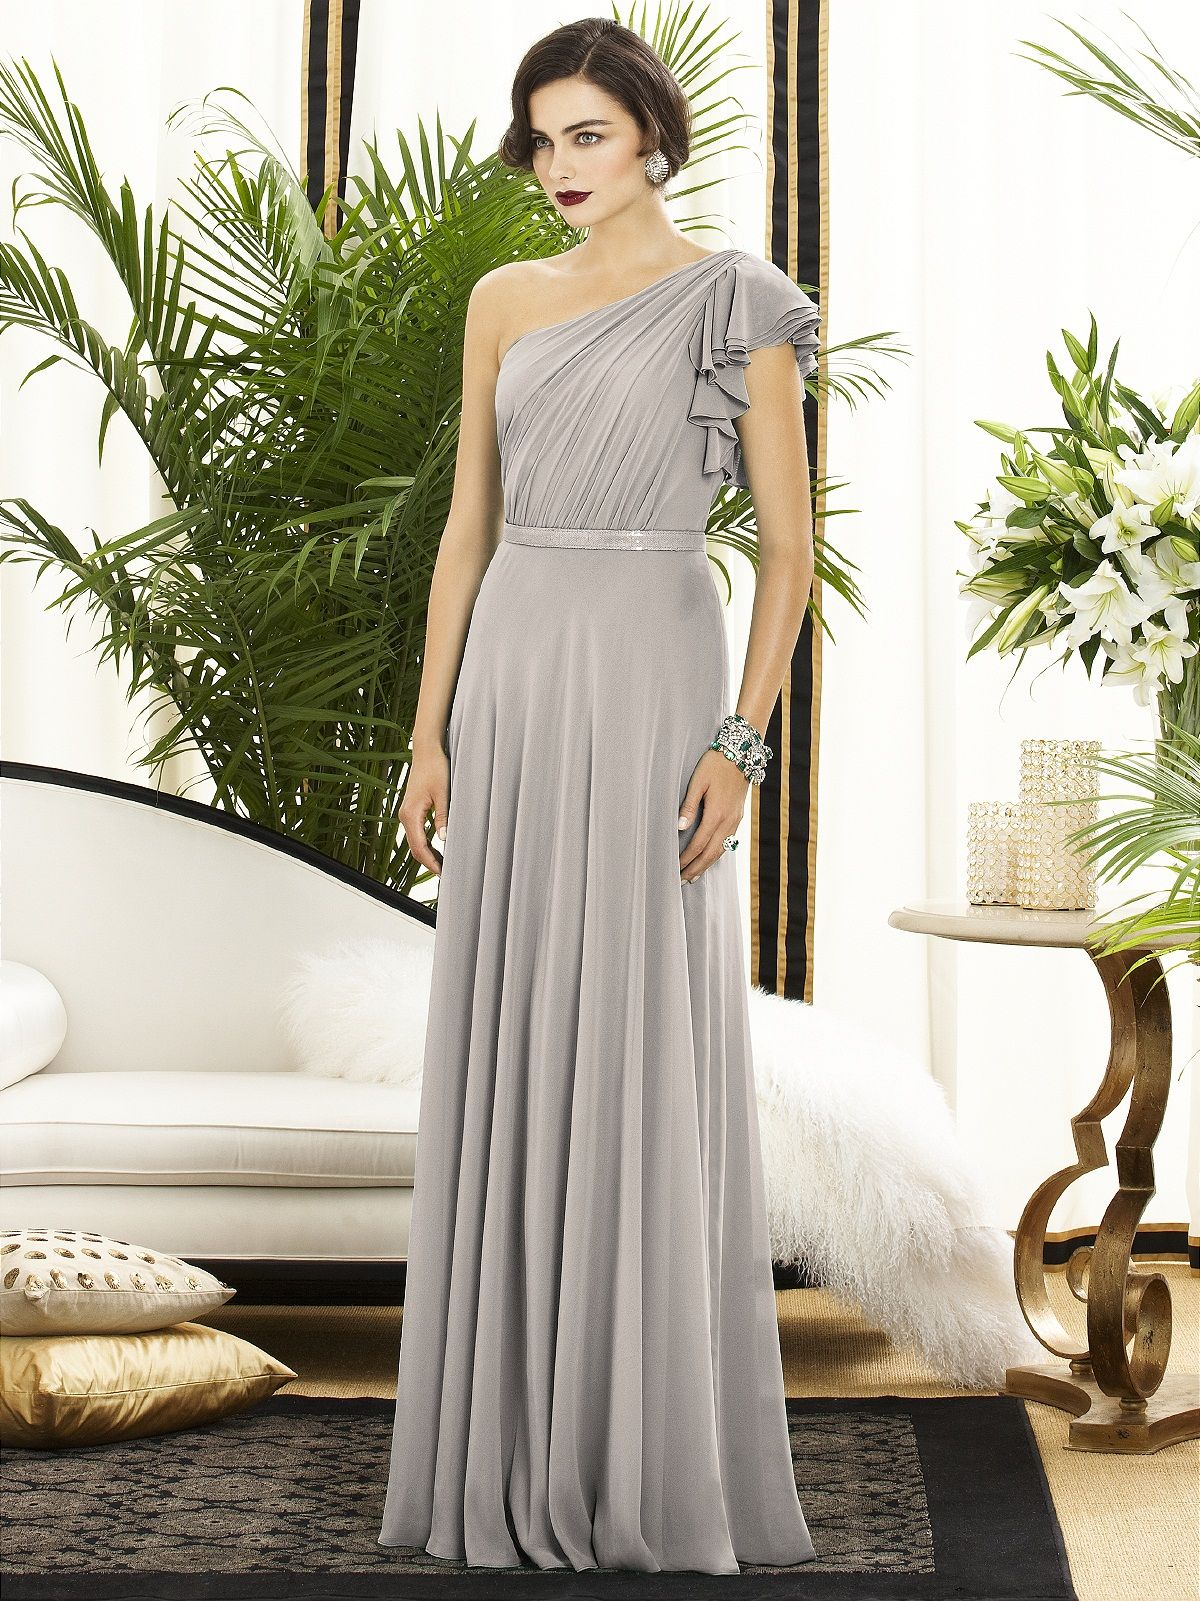 Dessy collection style chiffon bridesmaid dresses dress